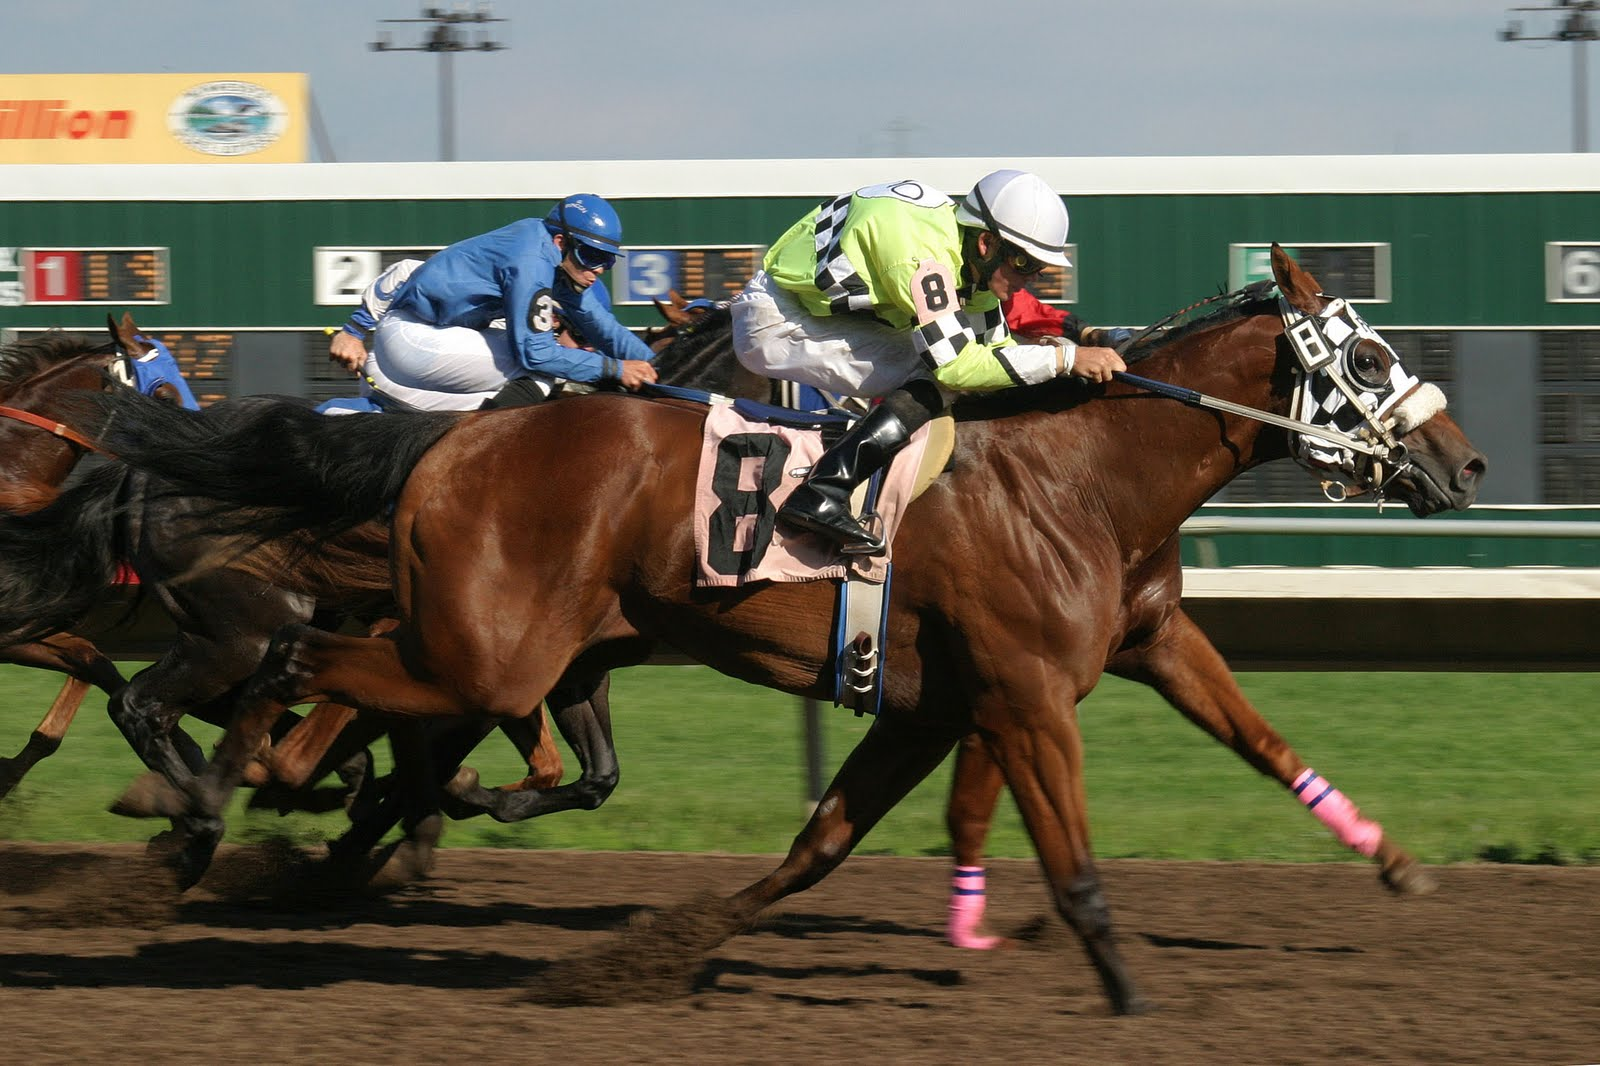 fast horse racing results